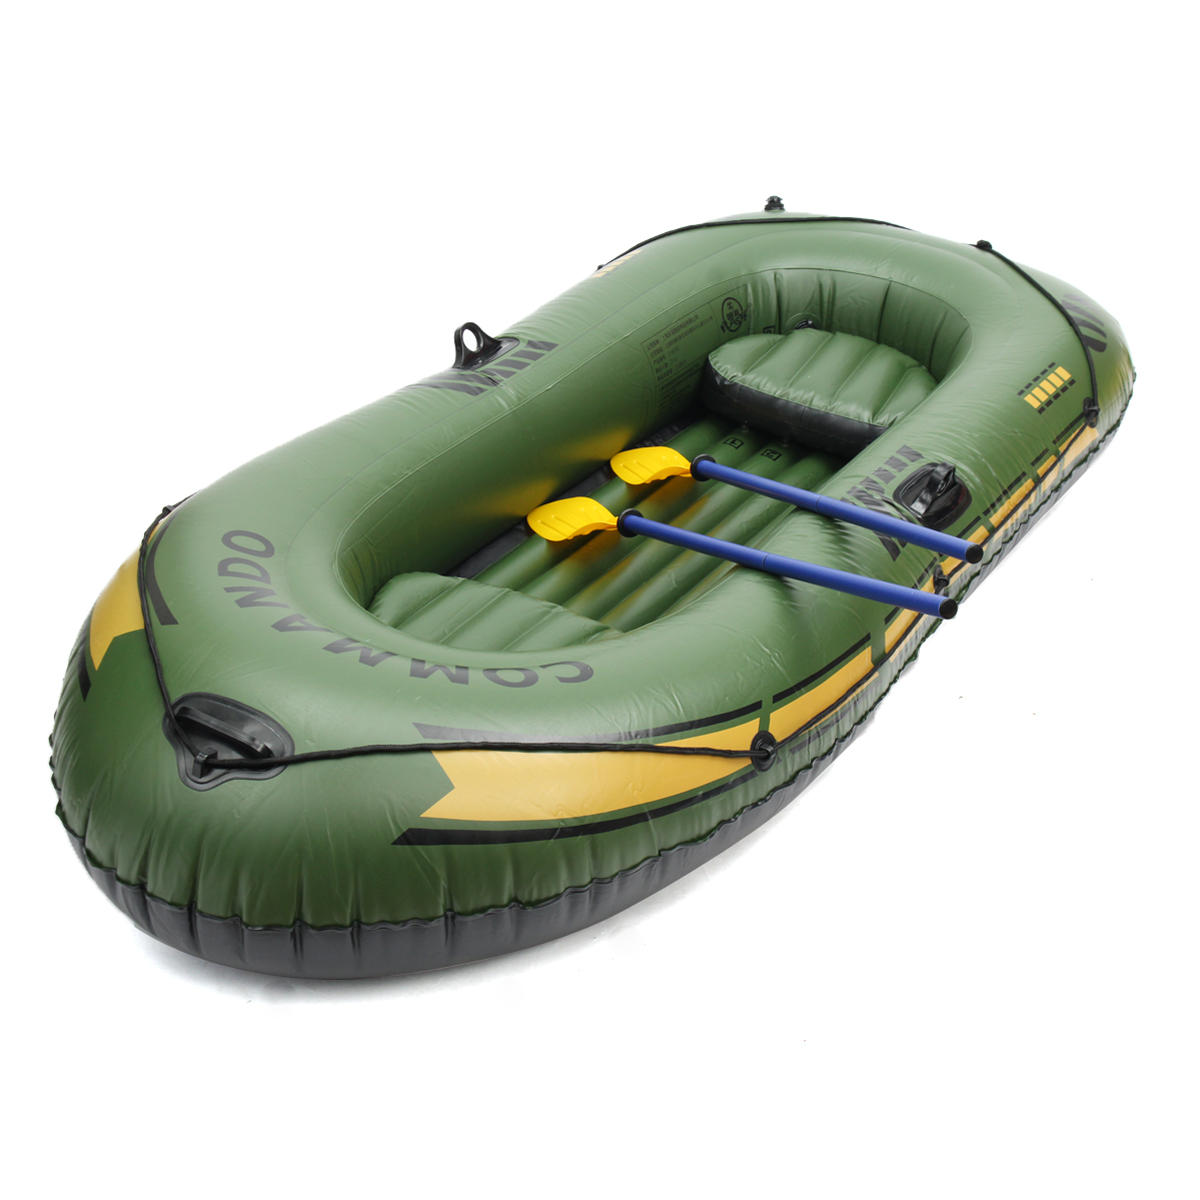 47cc134cfbc1 2 3 Persons PVC Inflatable Boat Rubber Dinghy For Kayaking Canoeing Rafting  Fishing - L COD